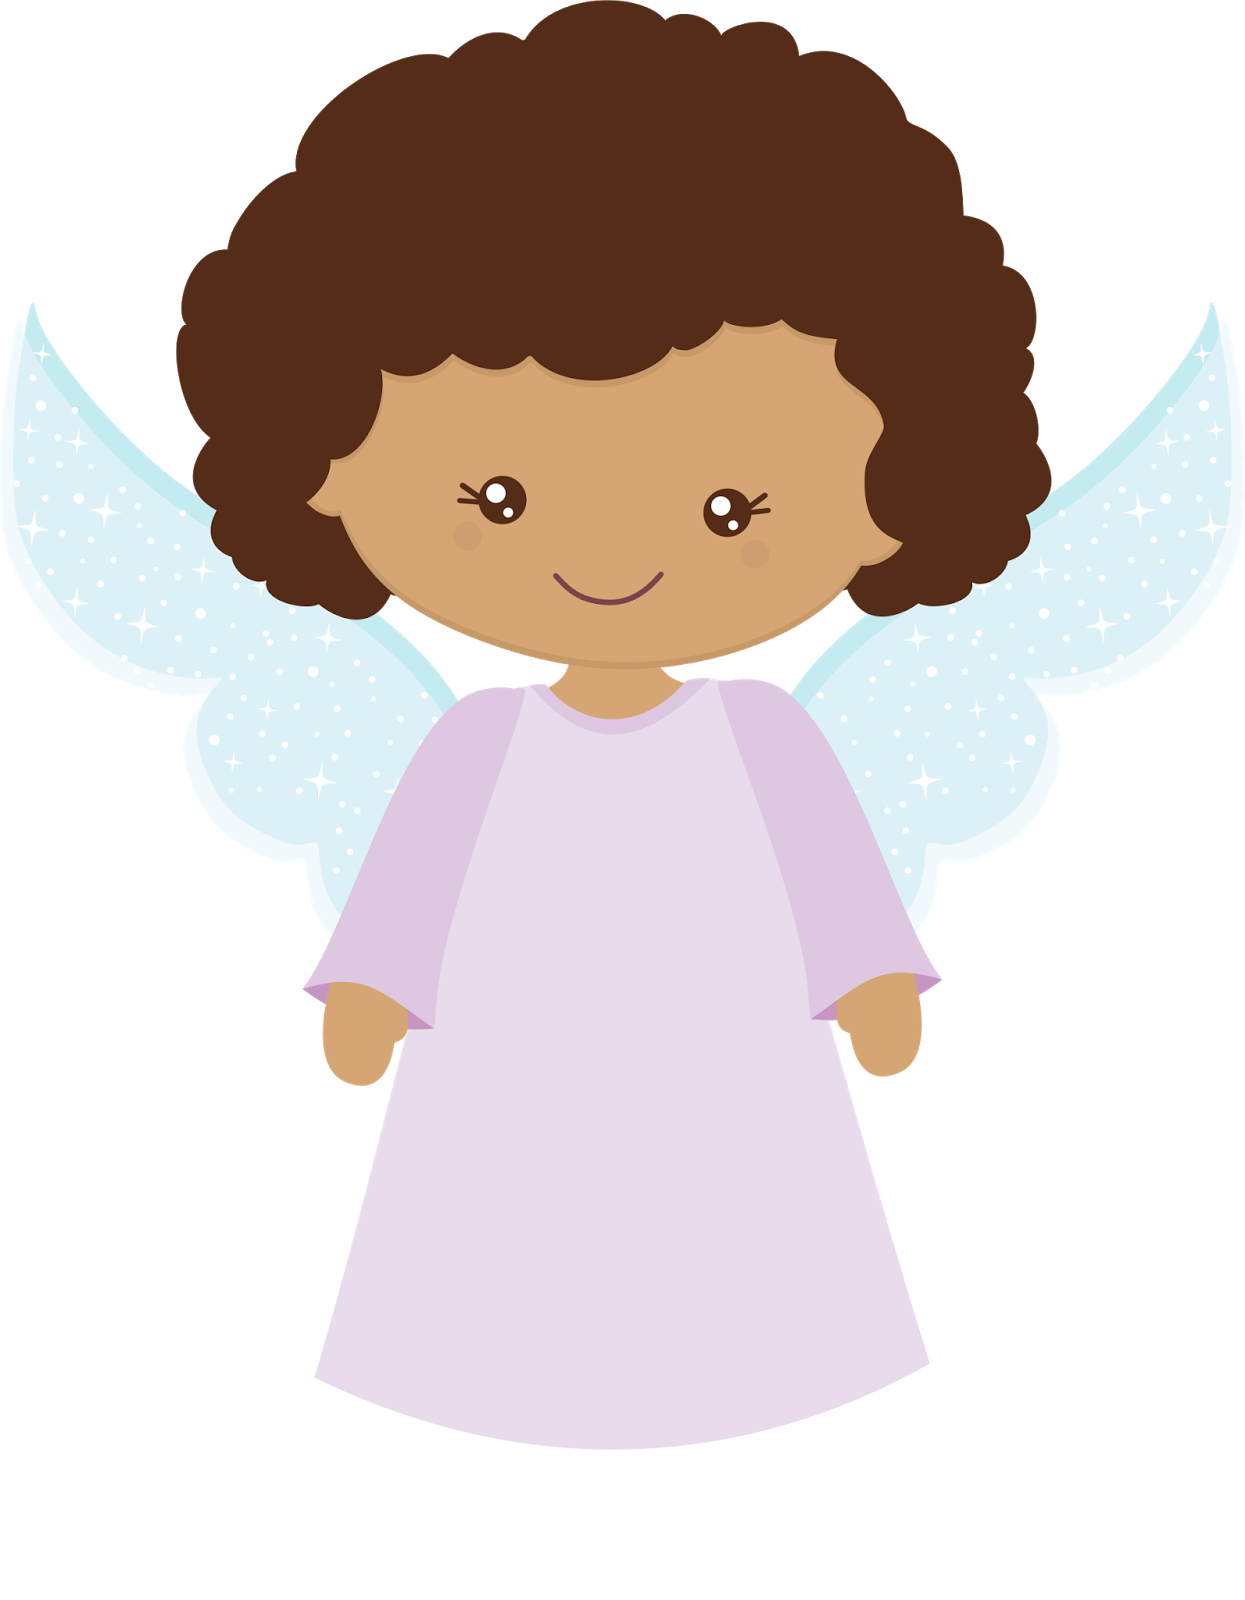 clipart royalty free download Help festas e personalizados. Nativity clipart angel.